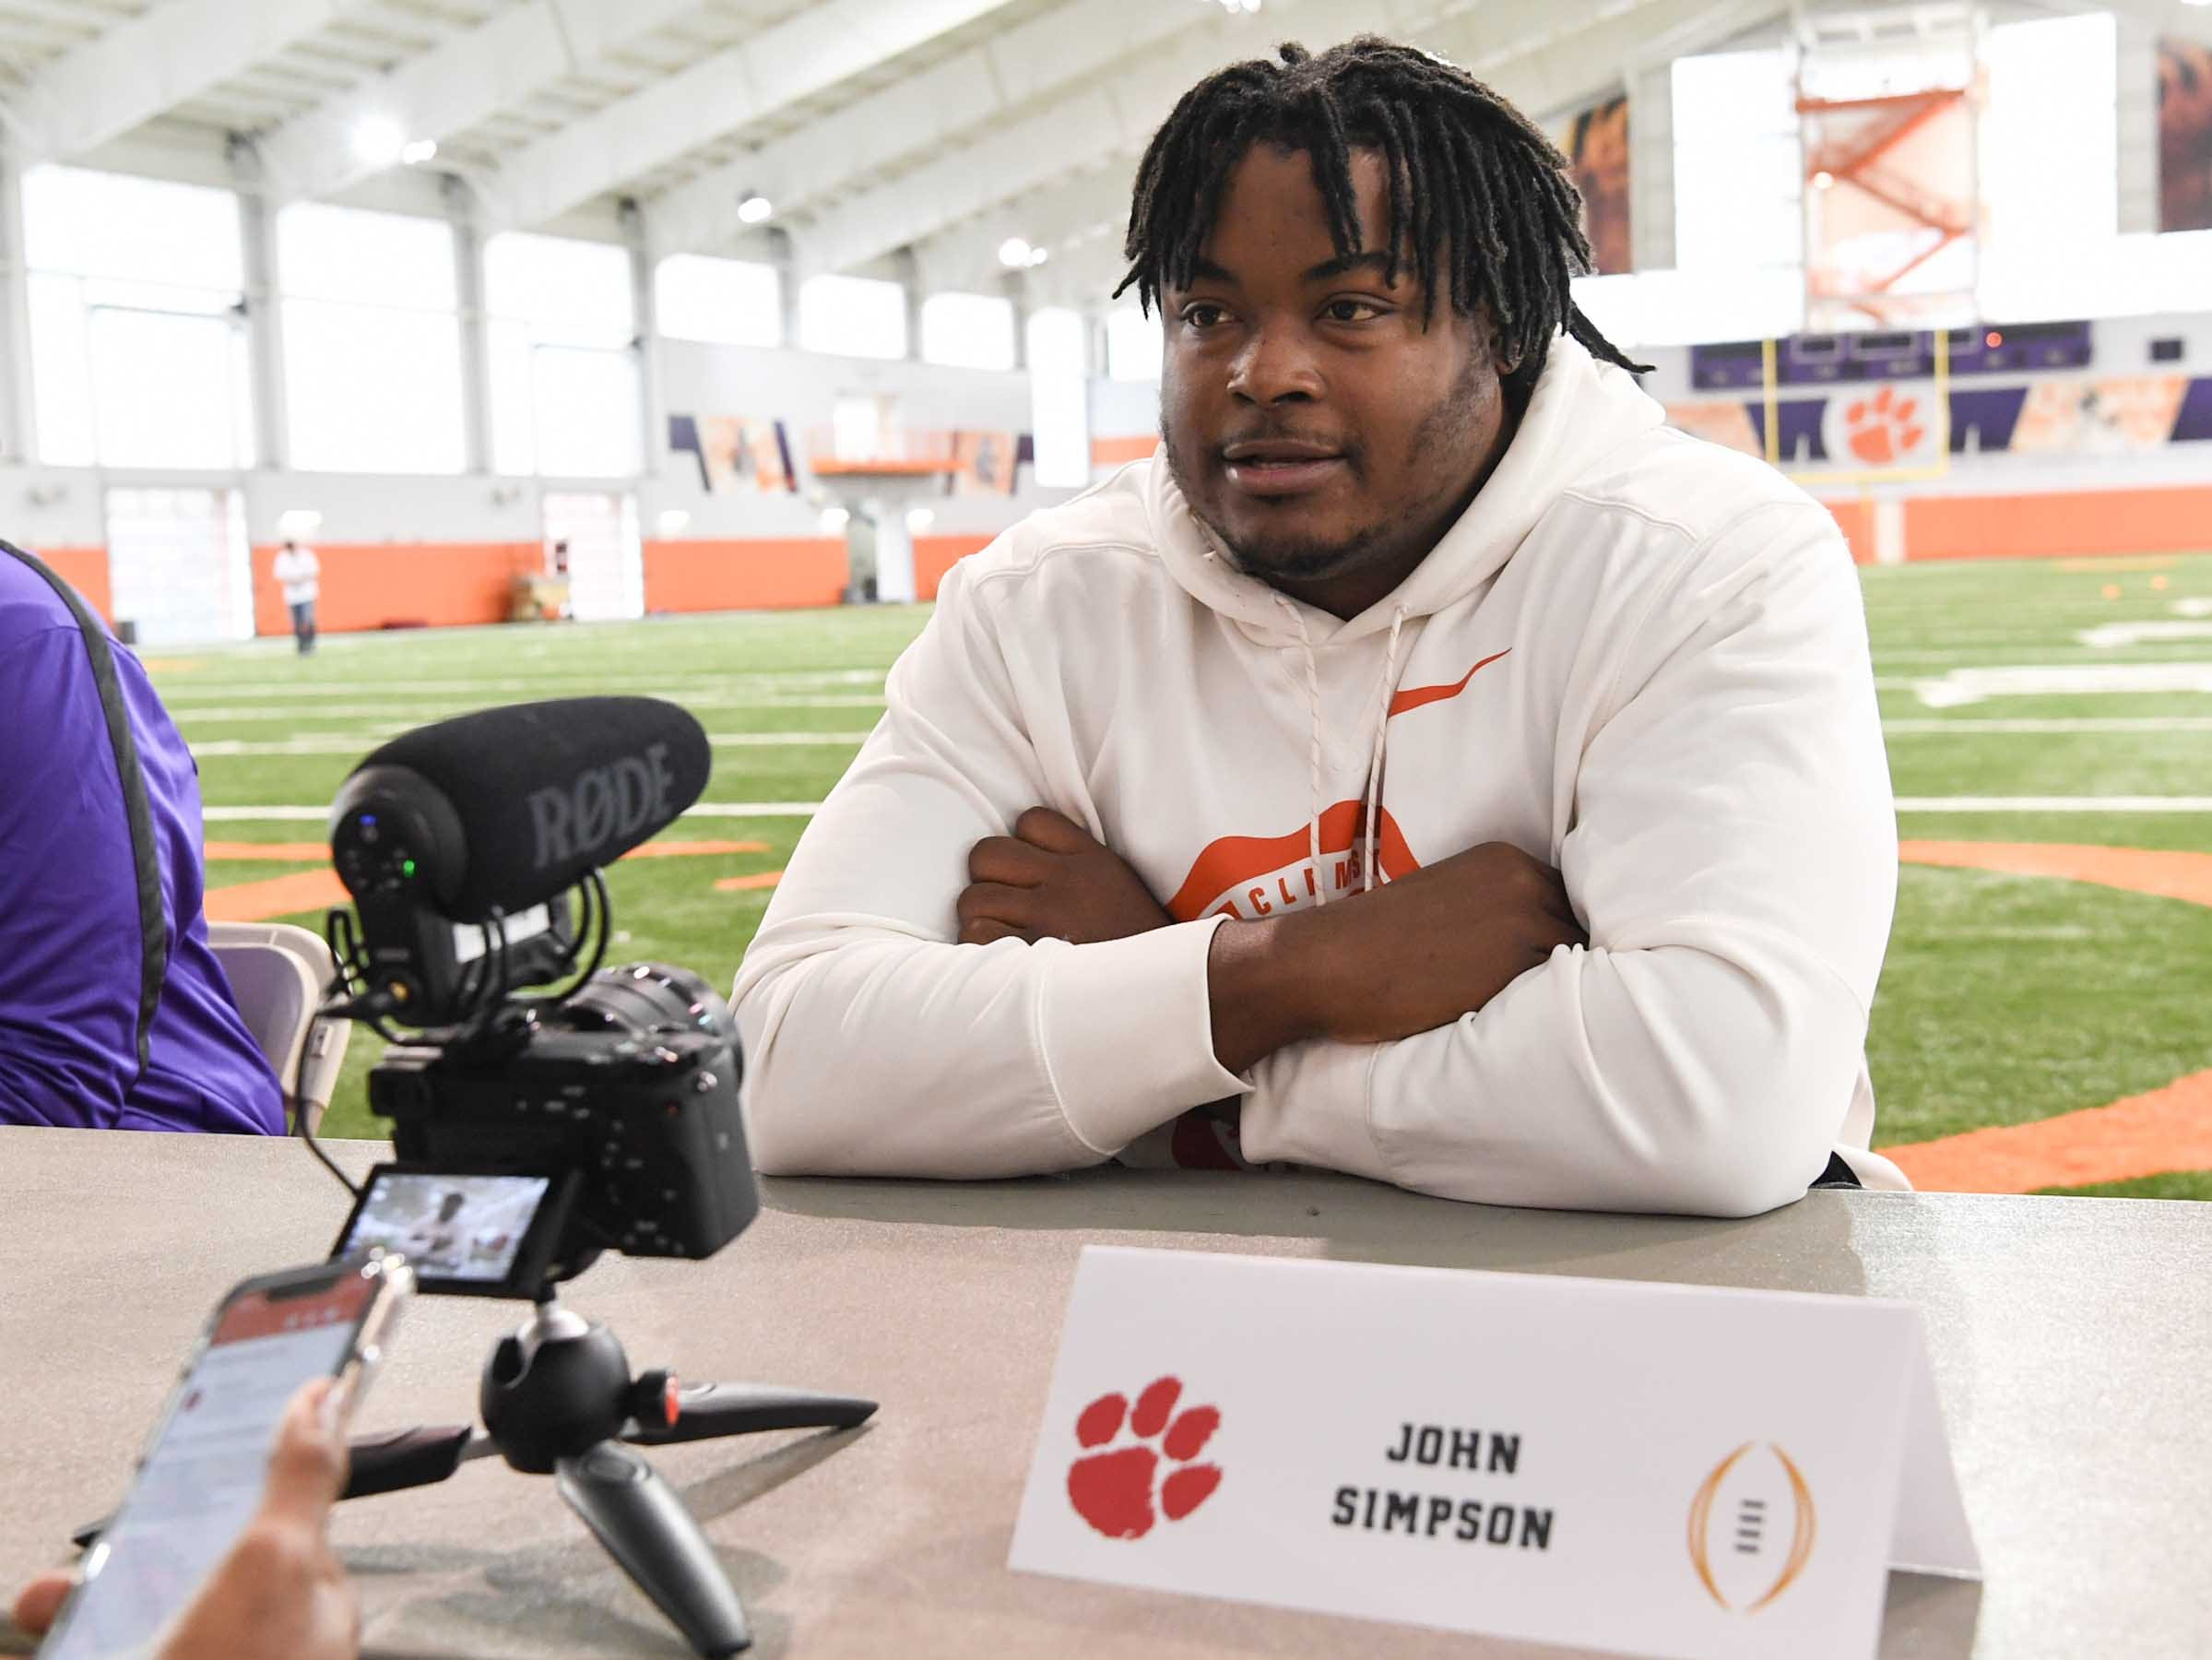 Clemson offensive guard John Simpson talks during media day in the Poe Indoor Facility in Clemson Wednesday, January 2, 2019.